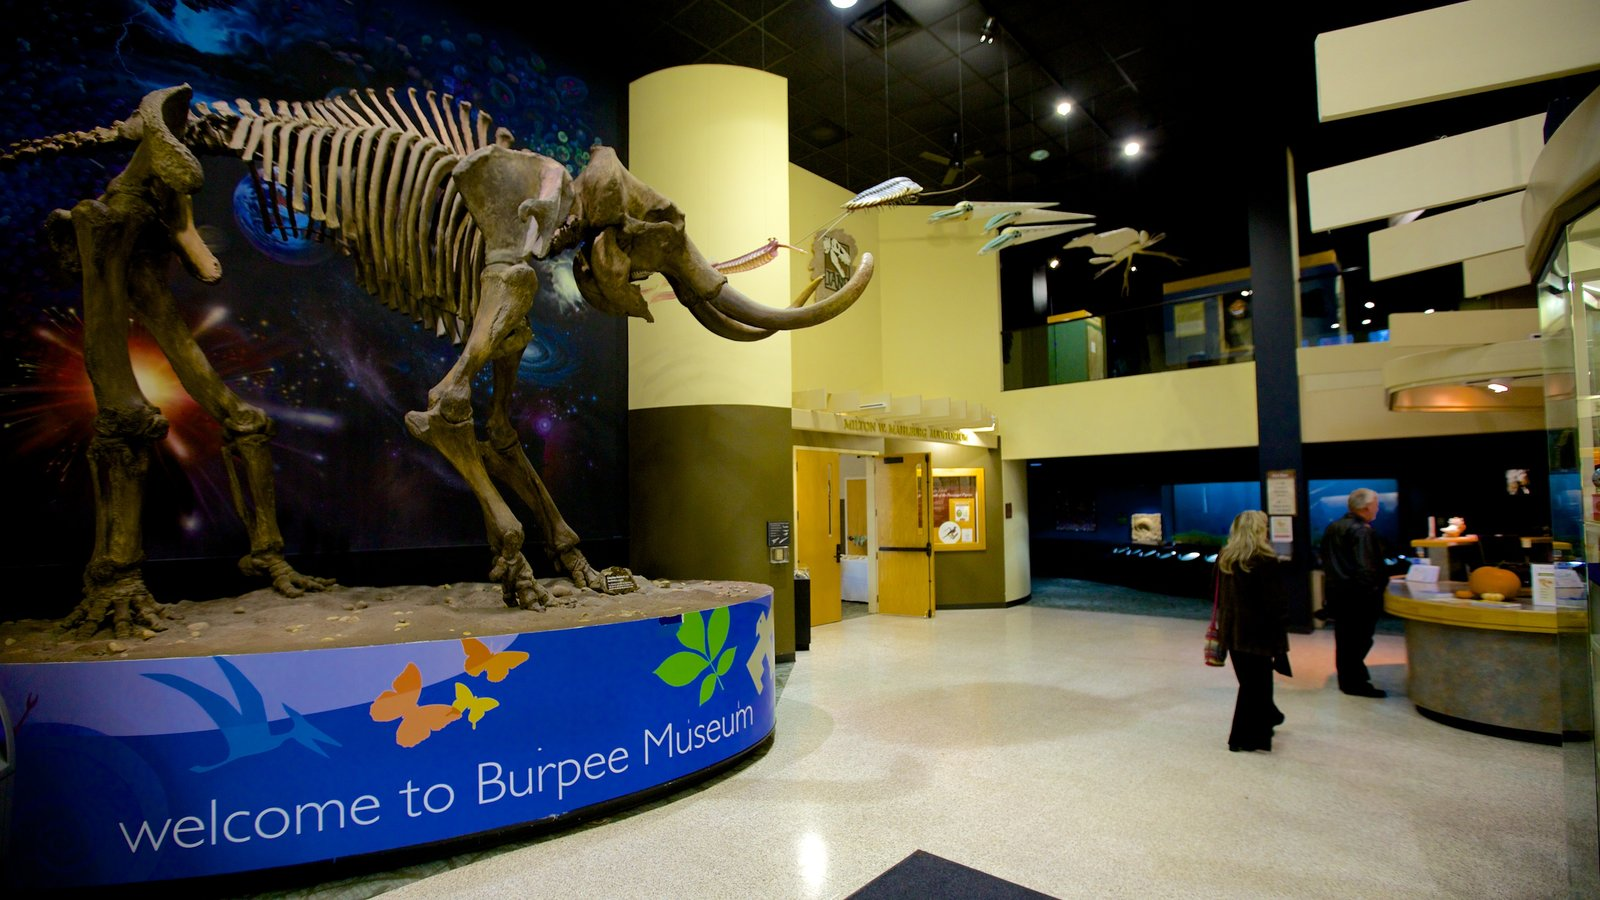 Burpee Museum of Natural History featuring interior views